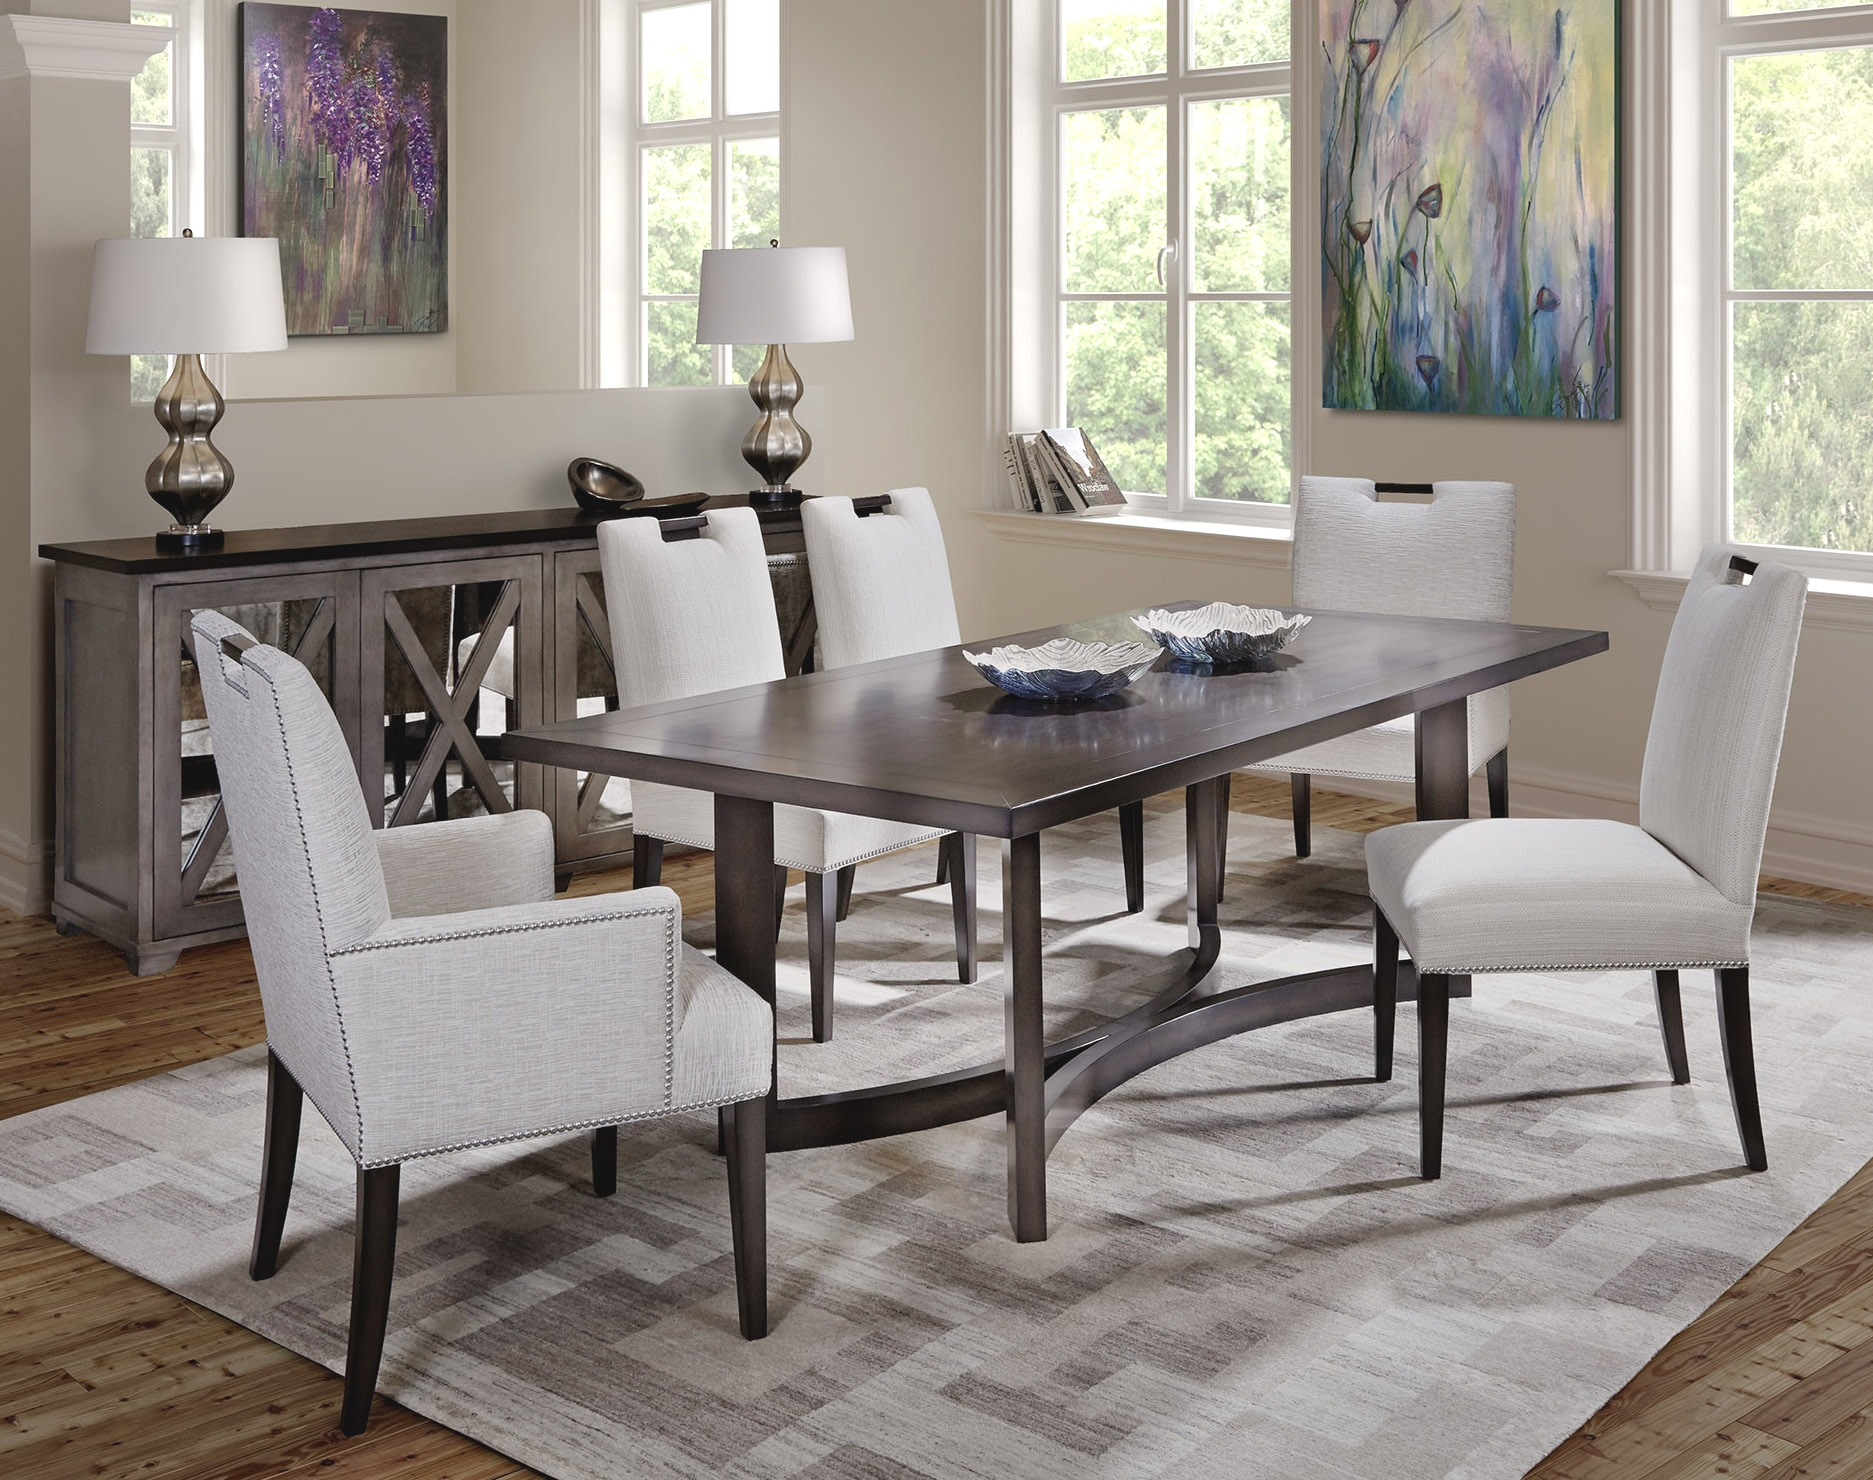 Dining Table Chair With Handle with regard to dimensions 1873 X 1480